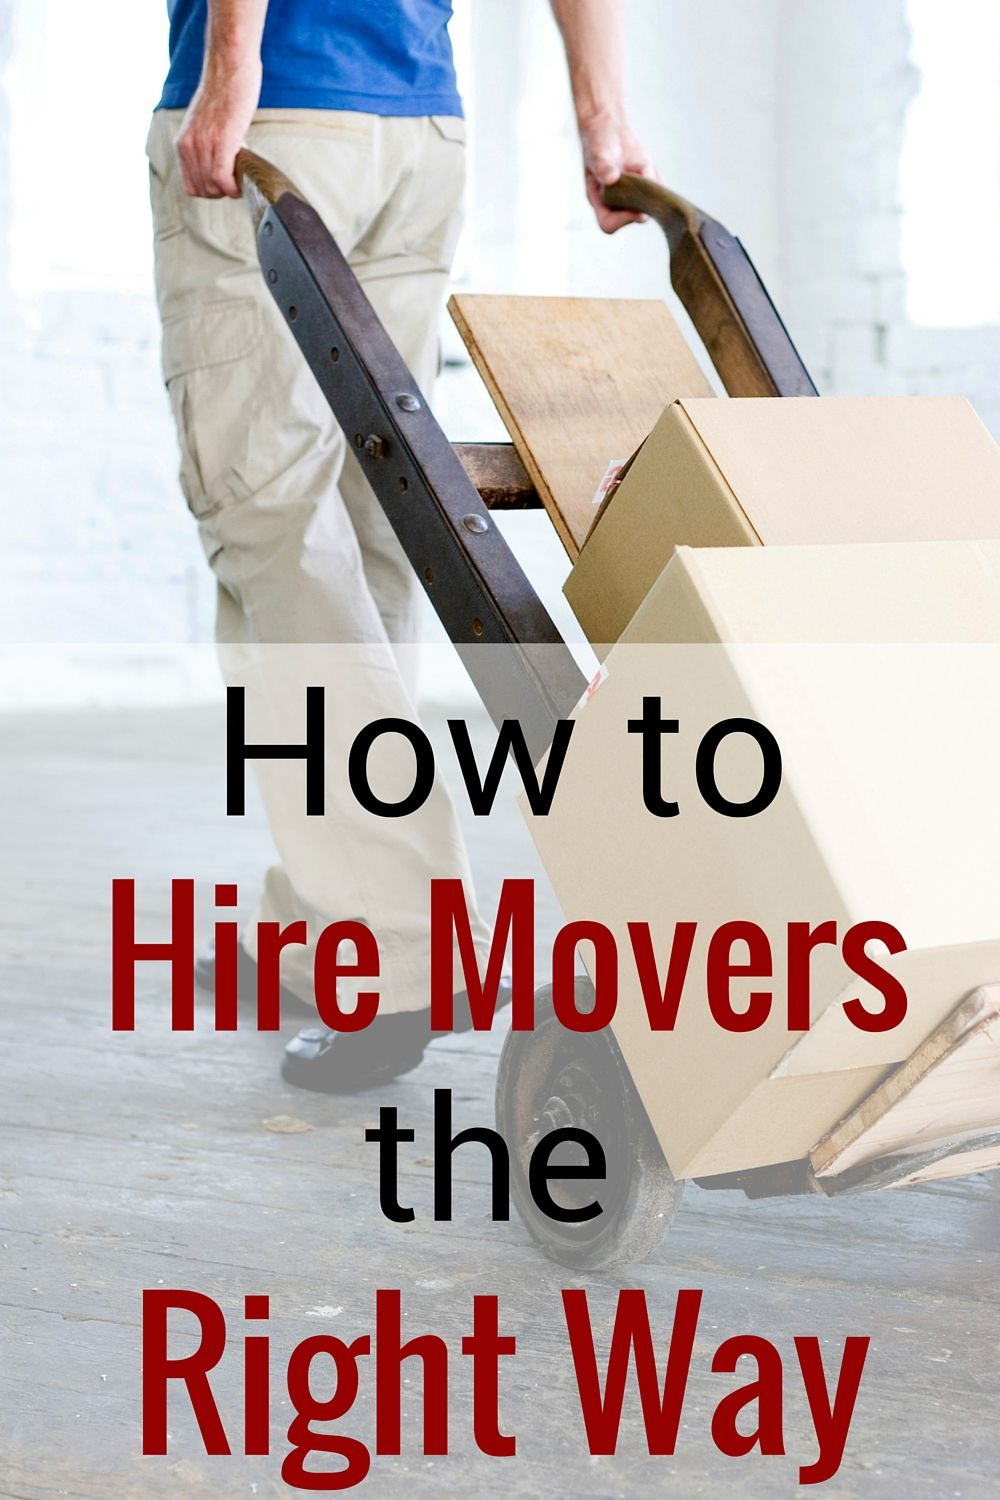 Moving Company Quotes Delectable I Got Screwedmovers How To Hire Movers The Right Way  Red Flag